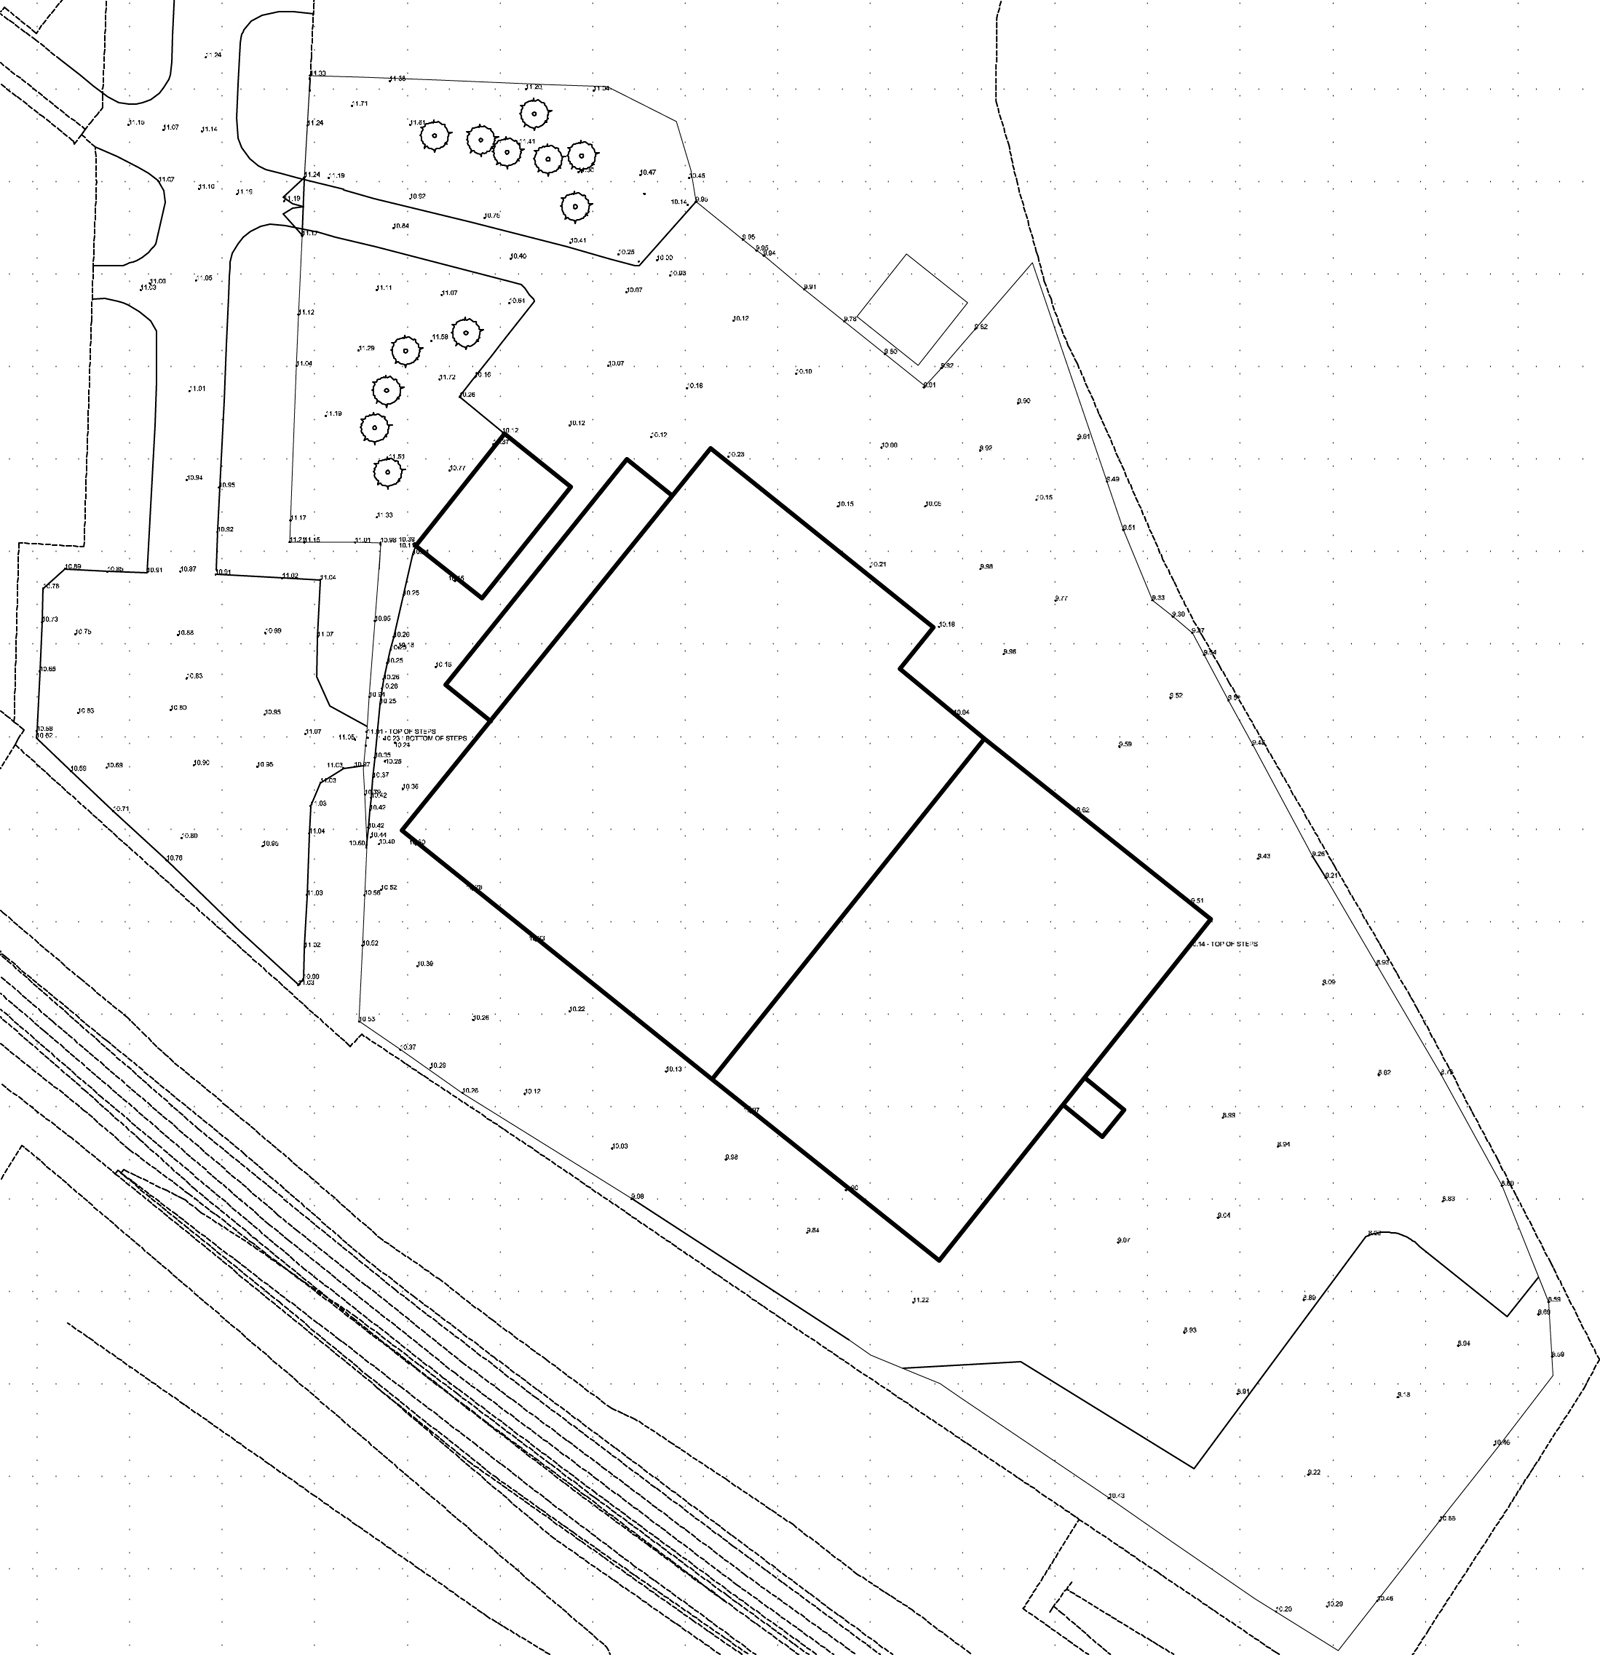 Topographic site plan 2